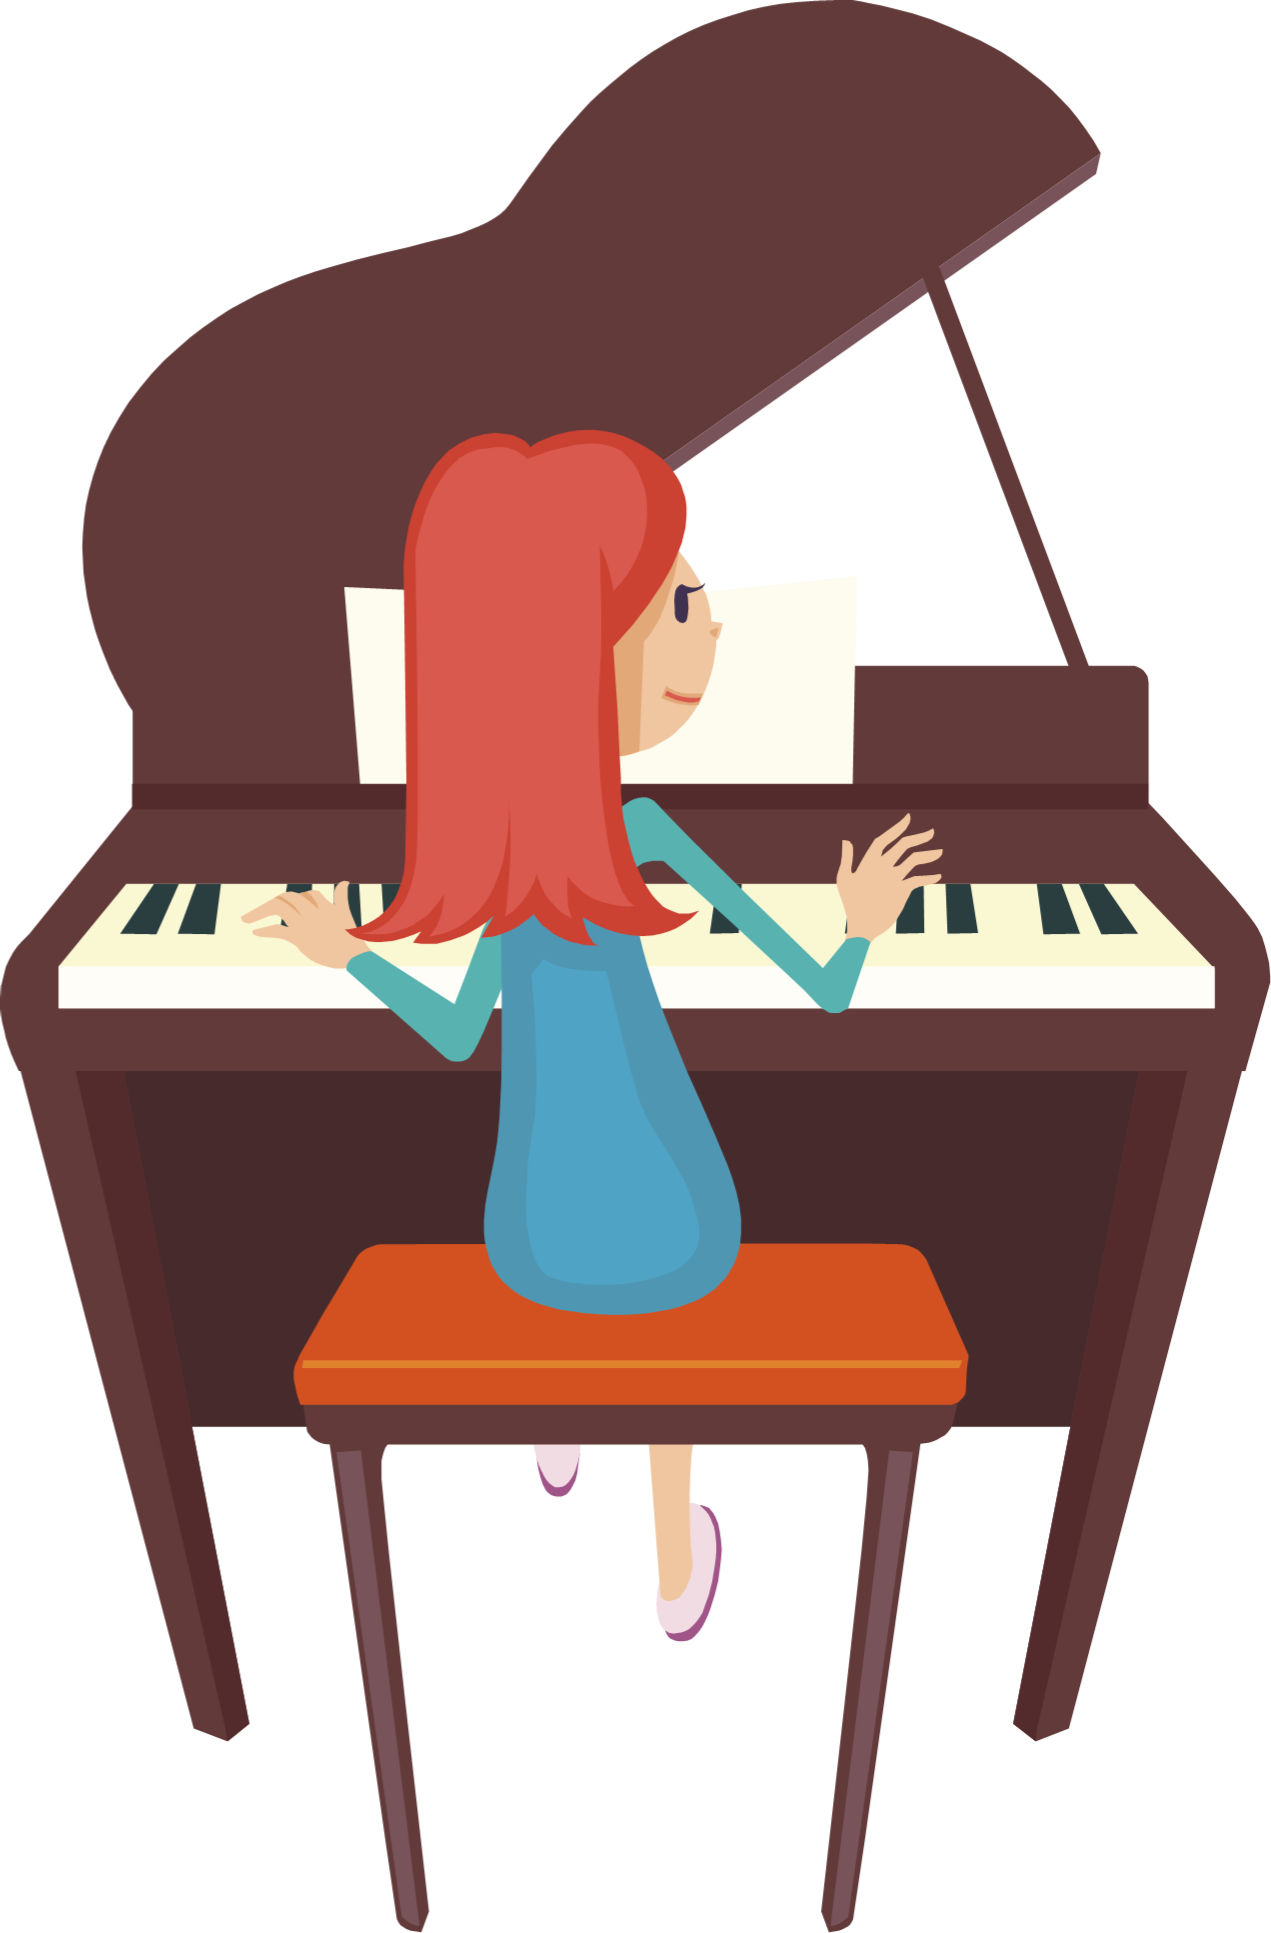 Piano clipart little girl. Free keyboard cliparts download